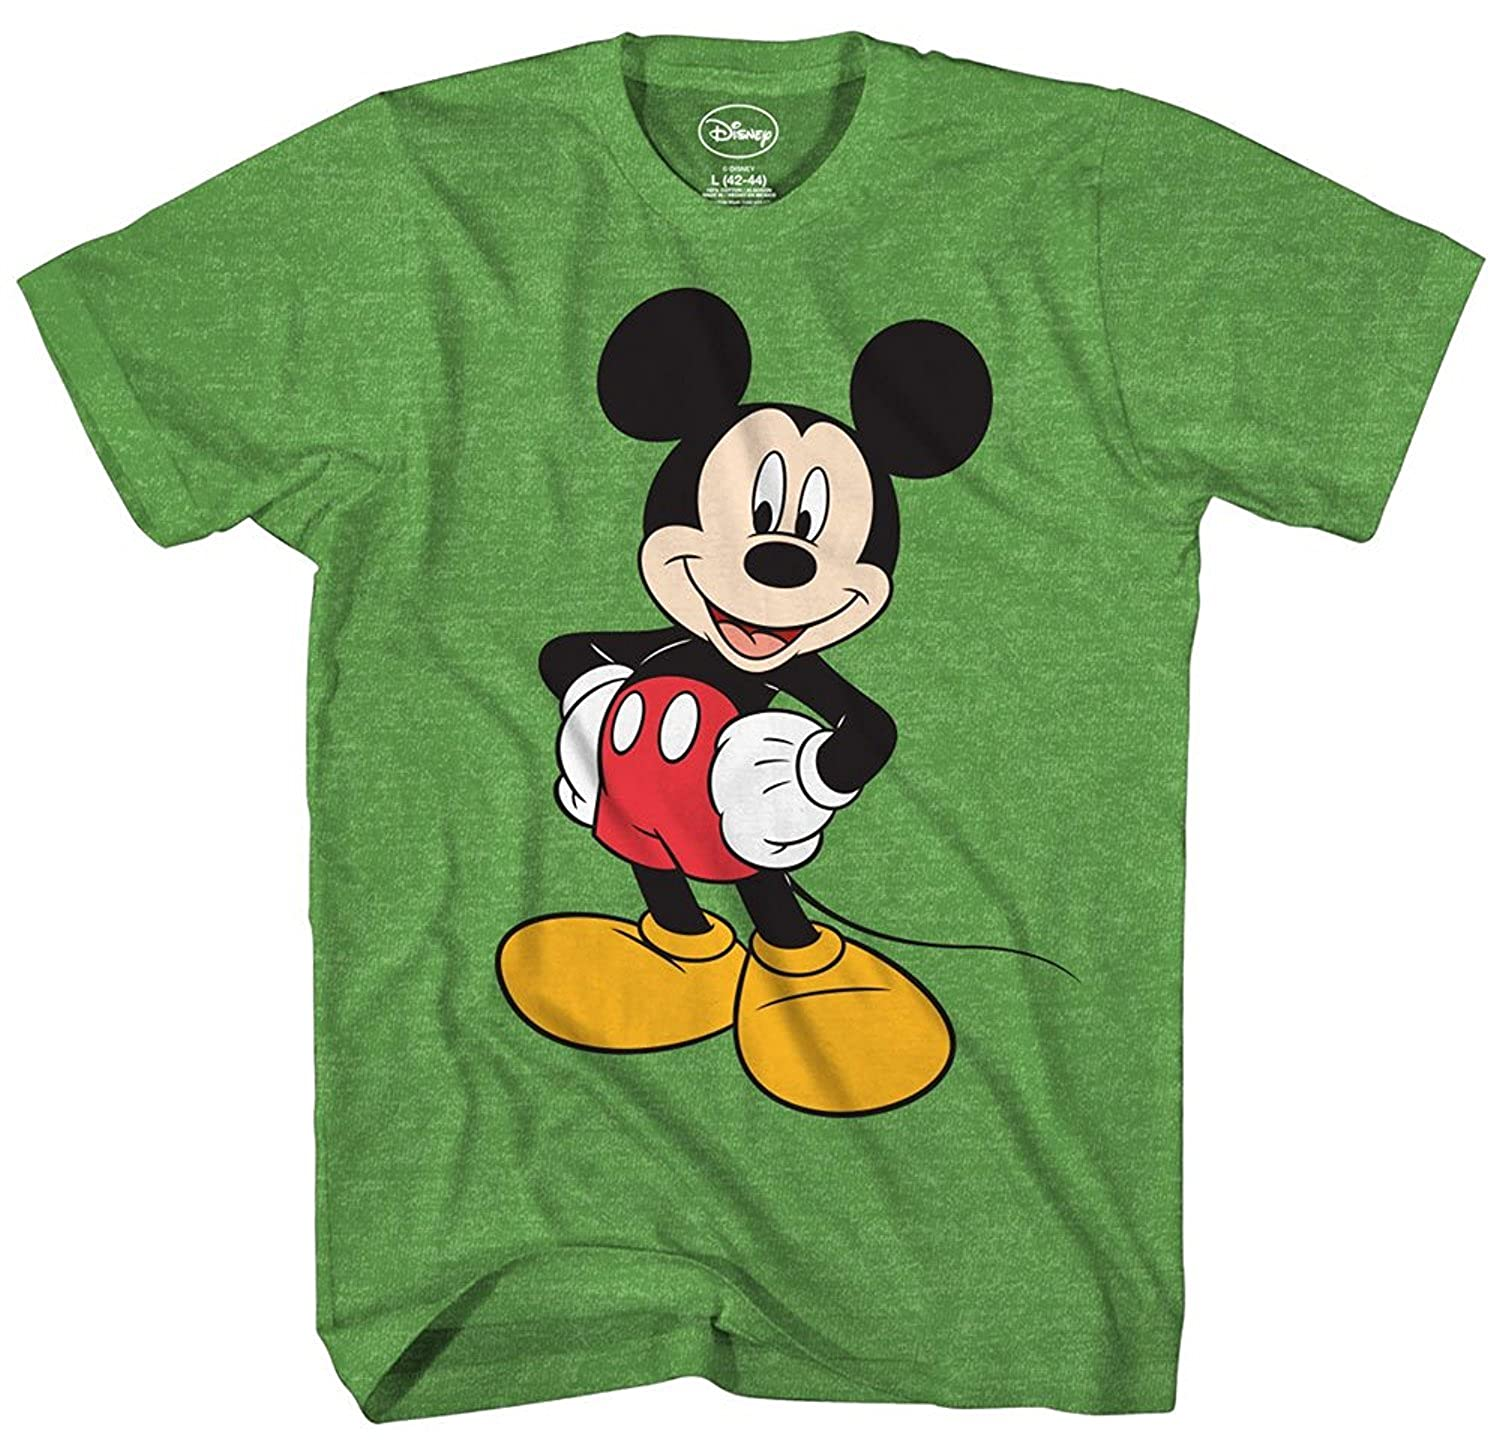 41a32214a Amazon.com: Disney Men's Classic Mickey Mouse Full Size Graphic Short  Sleeve T-Shirt: Clothing